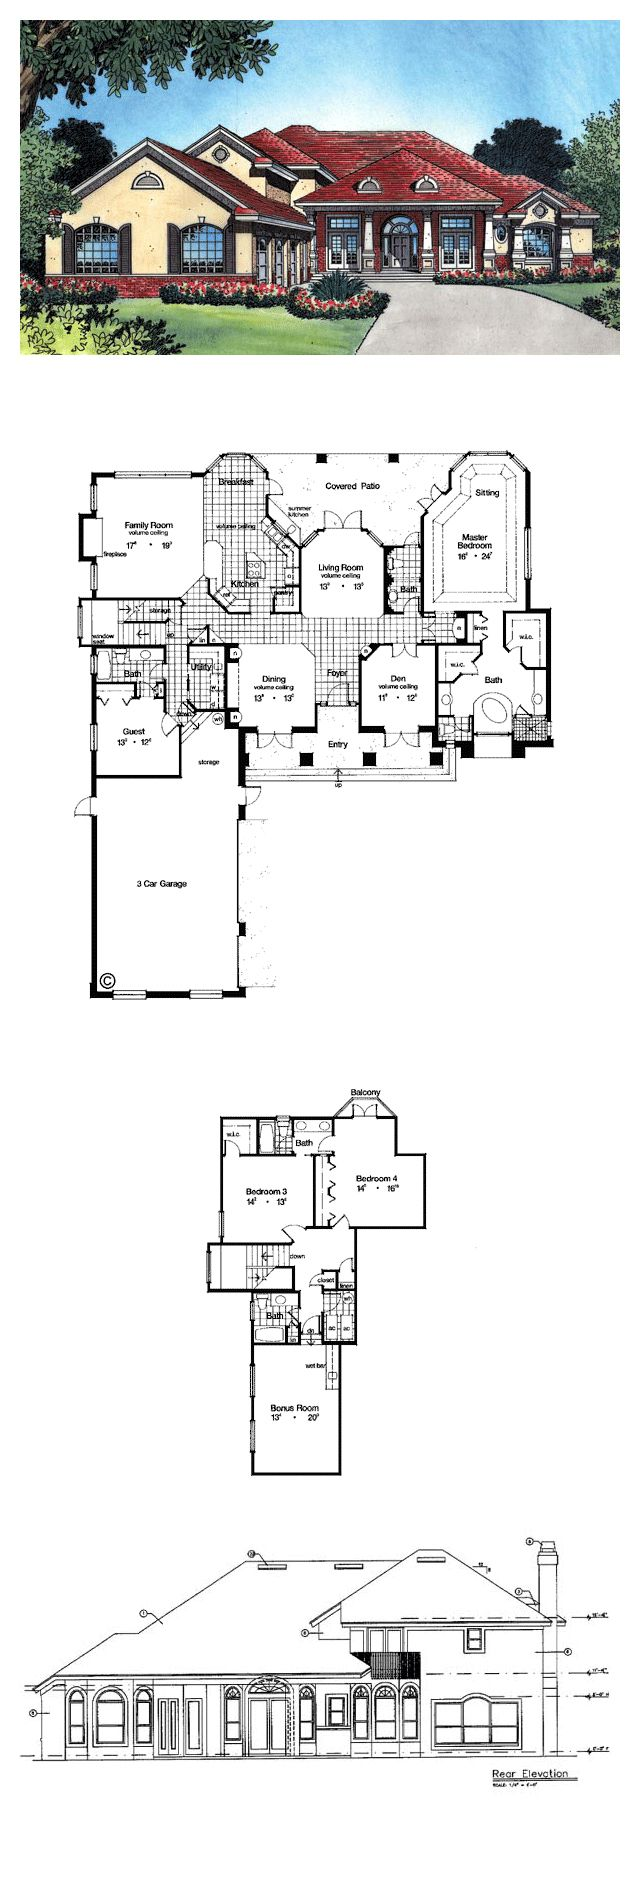 Luxury house plans total living area sq ft